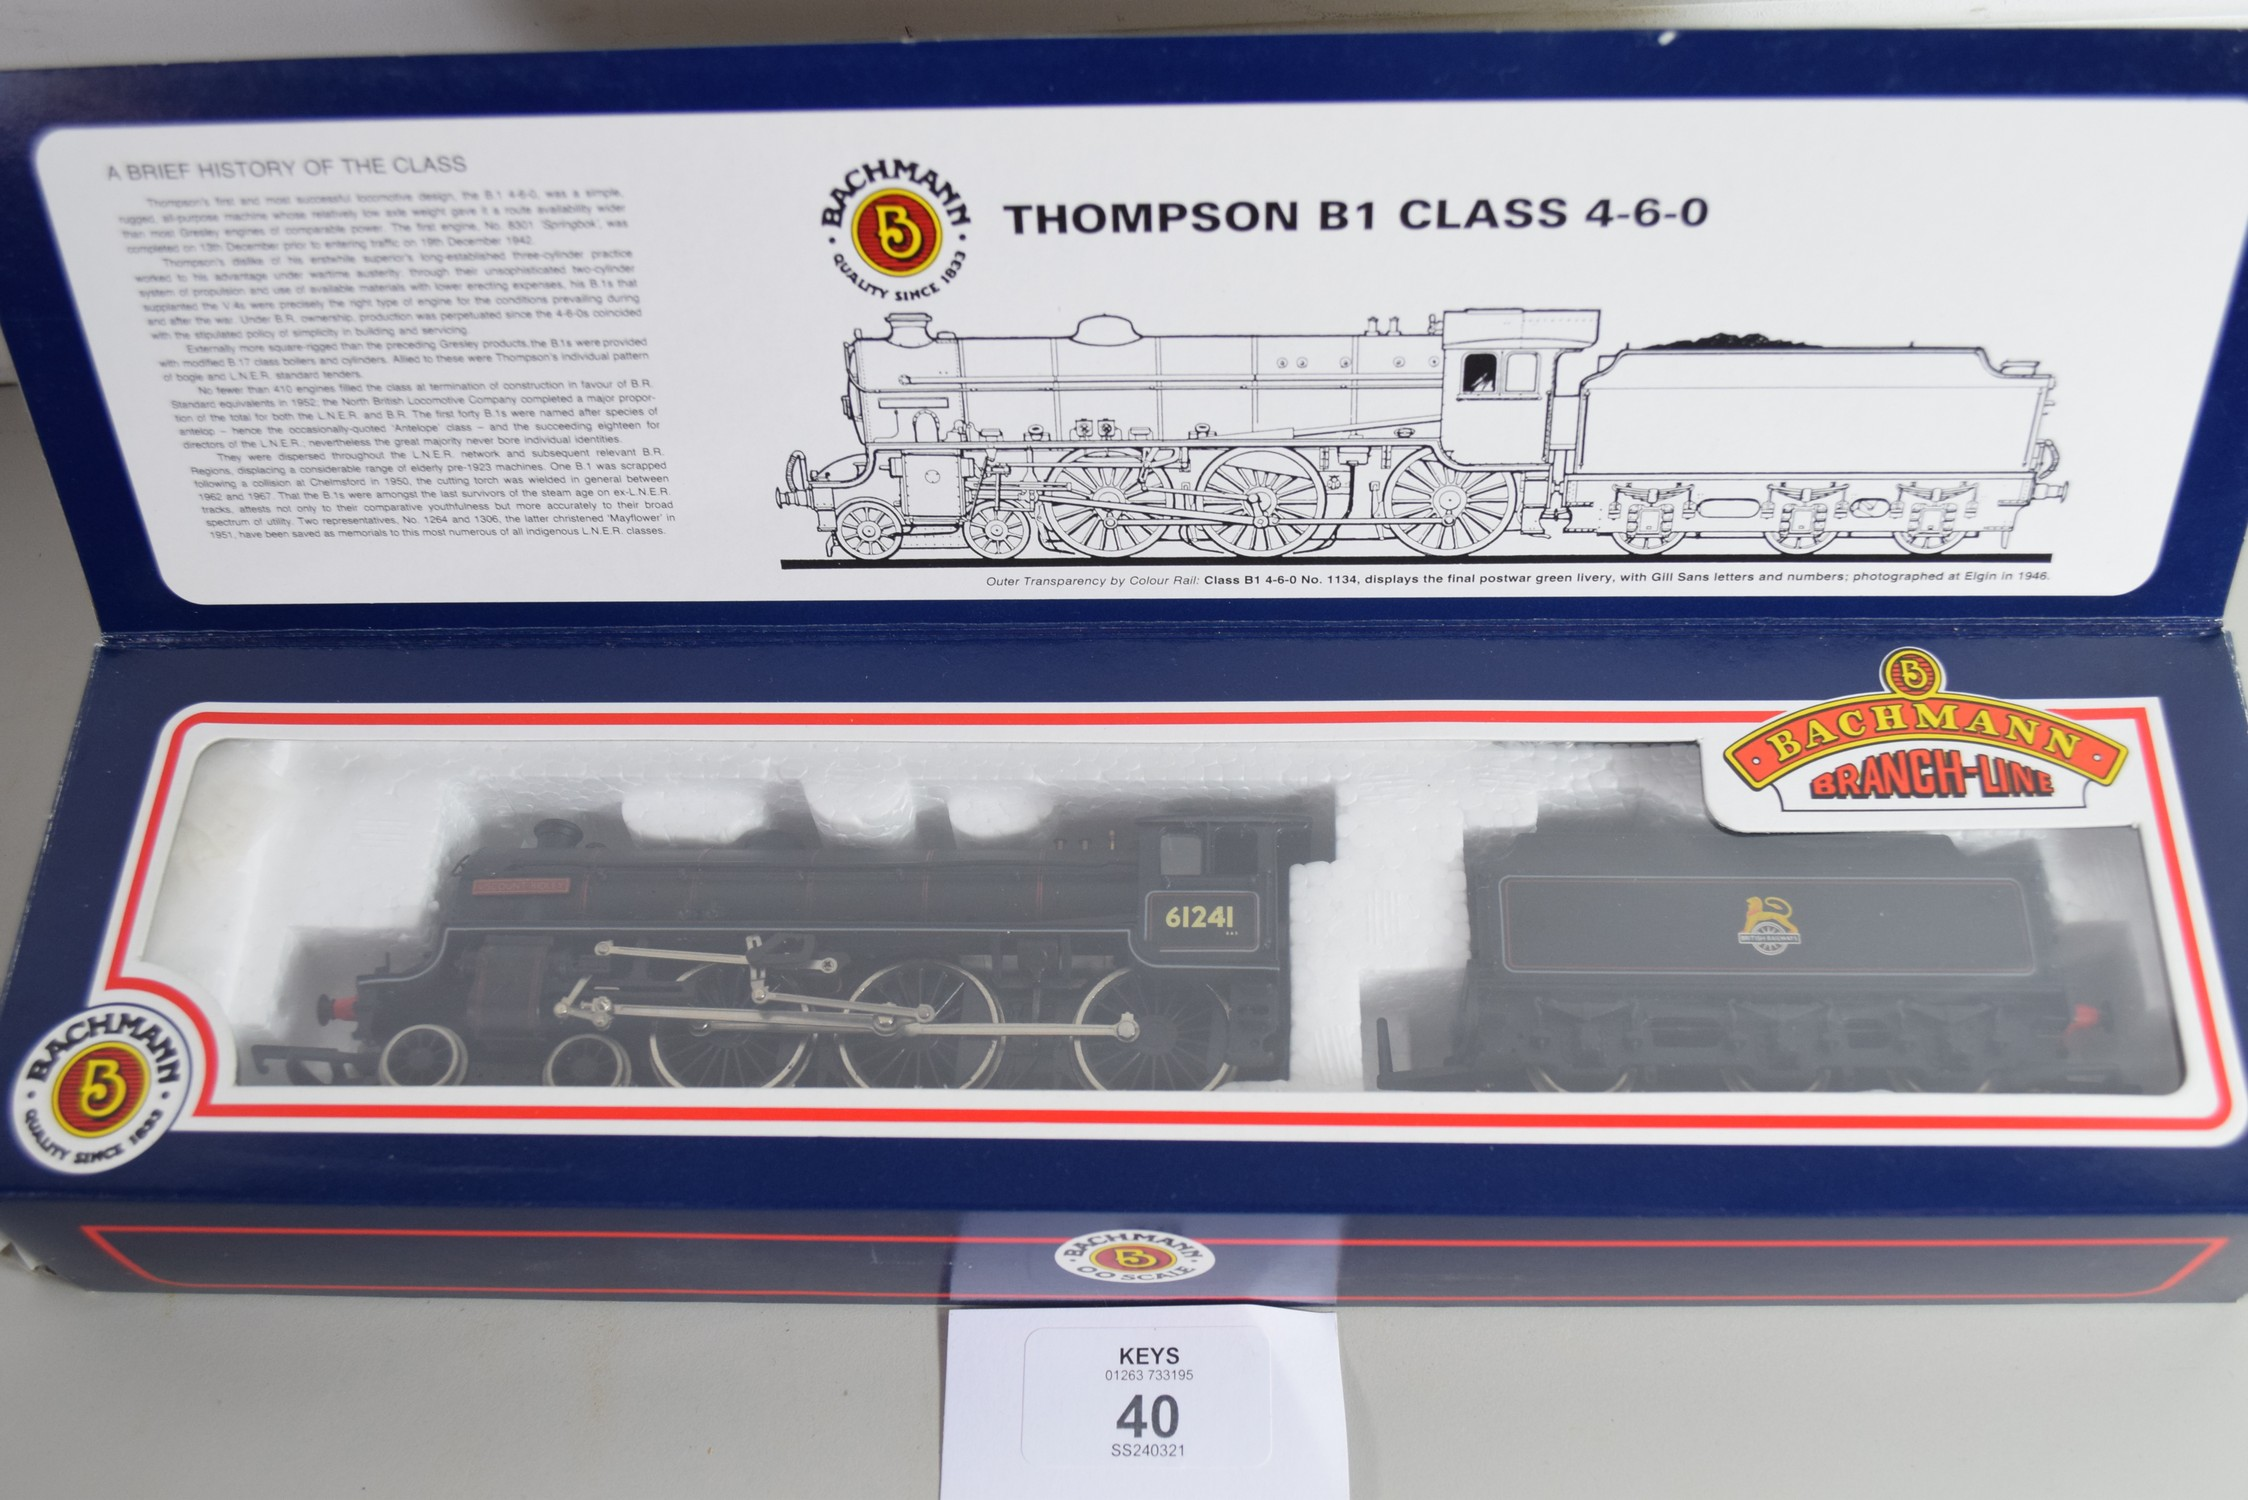 """Boxed Bachmann 00 gauge 31-701 B1 """"Viscount Ridley"""" BR black, electric generator No 61241 - Image 2 of 3"""